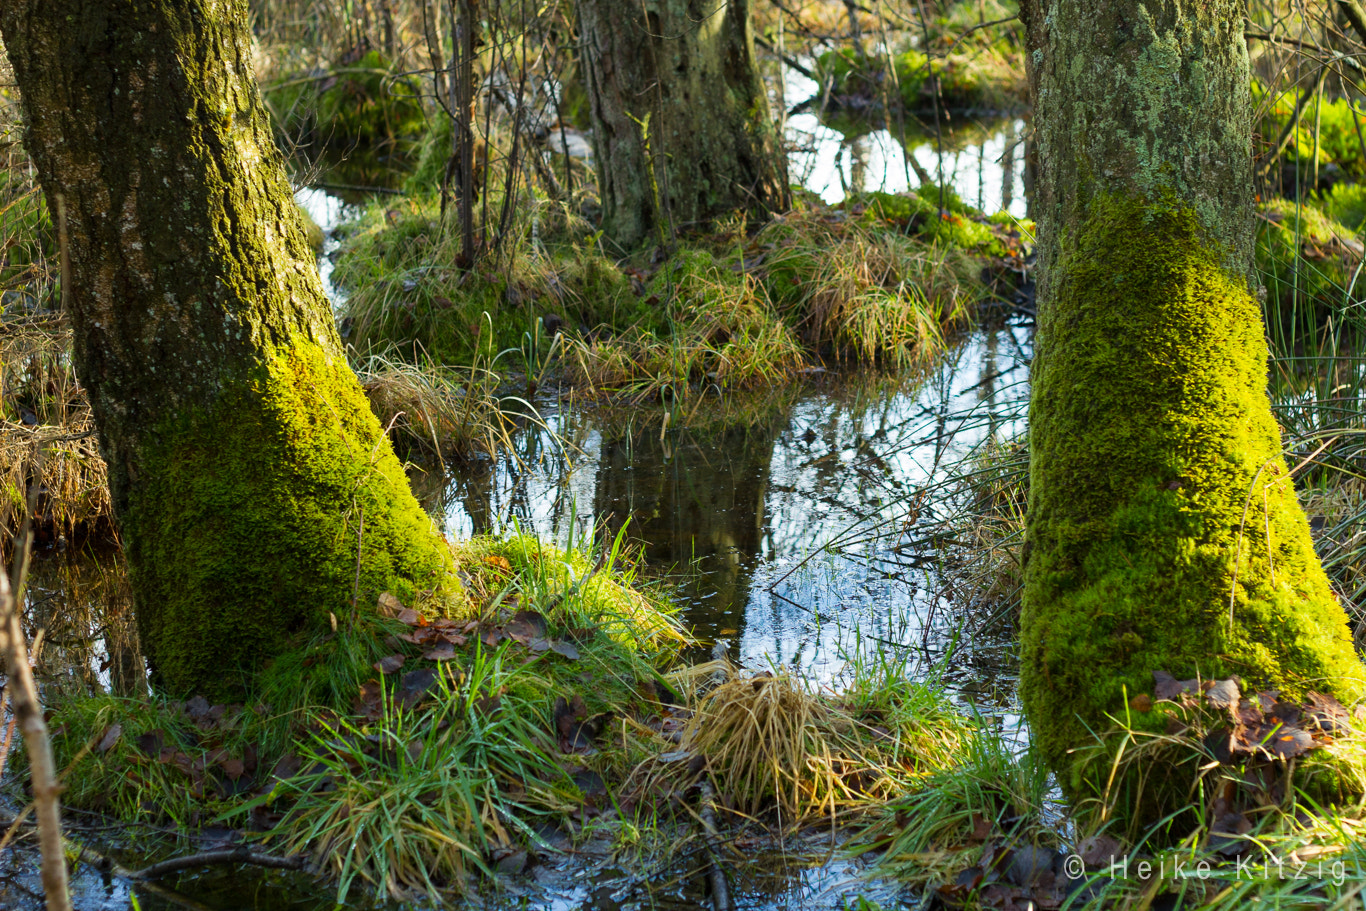 Photograph Moss in Schwenningen Germany by Heike Kitzig on 500px